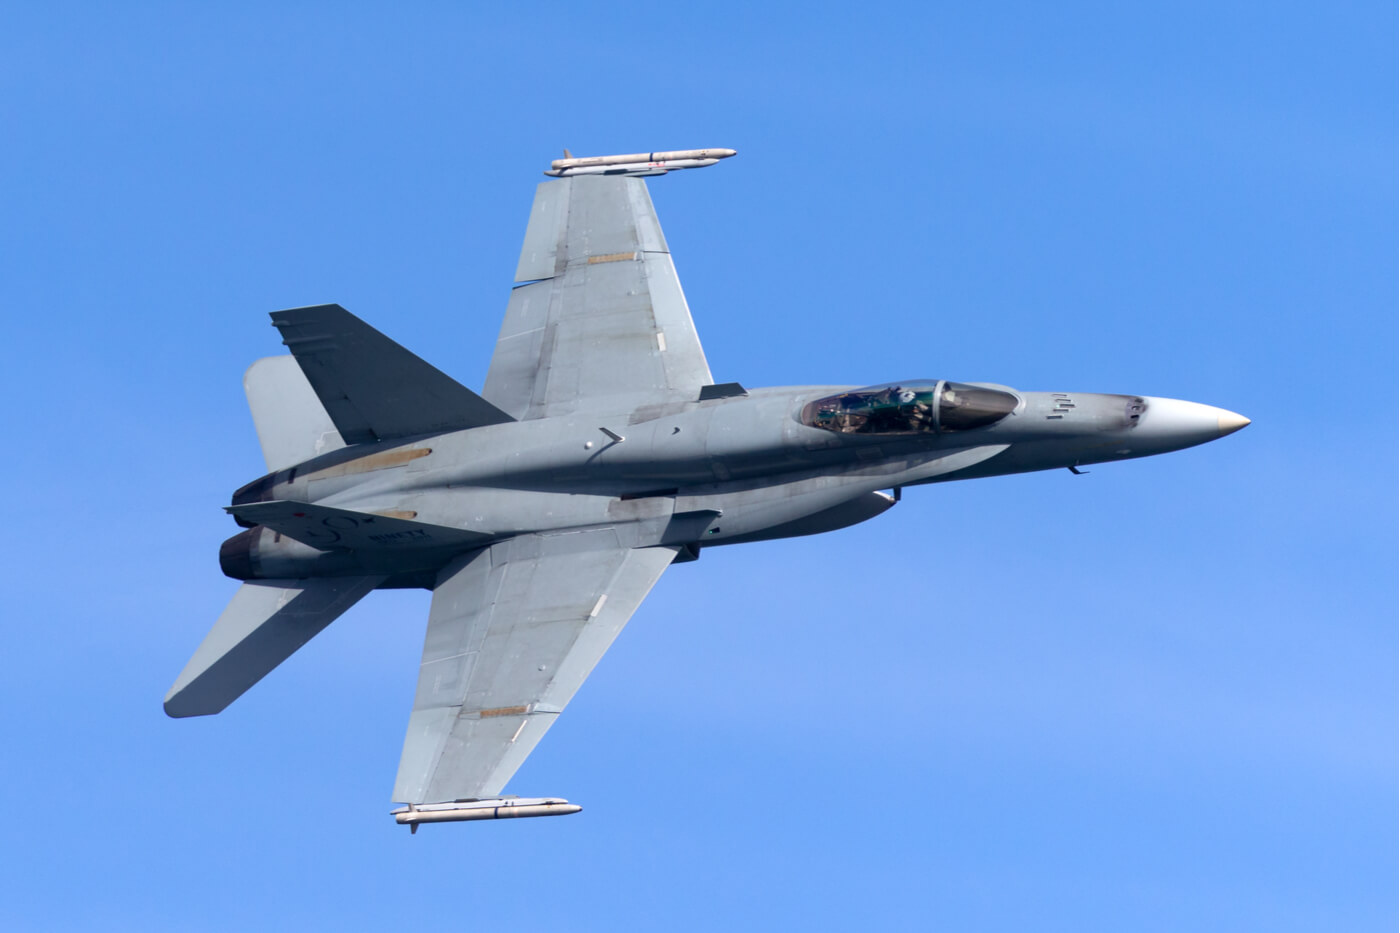 Australia to sell 46 F/A-18 Hornets to private military contractor